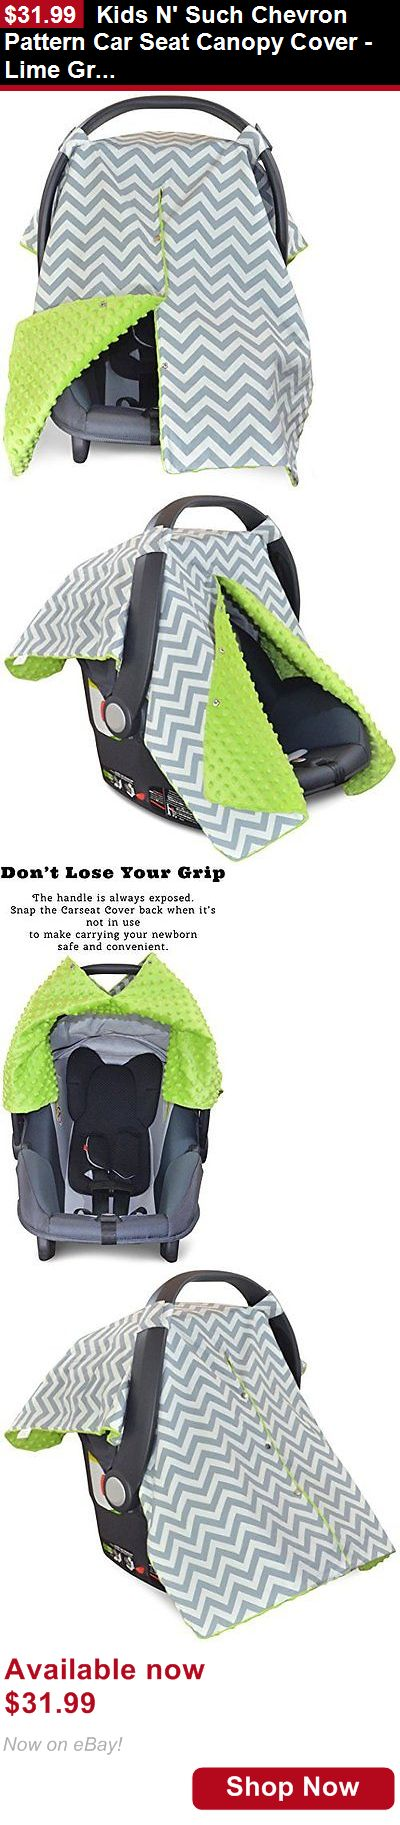 Car Seat Accessories: Kids N Such Chevron Pattern Car Seat Canopy Cover - Lime Green Minky BUY IT NOW ONLY: $31.99